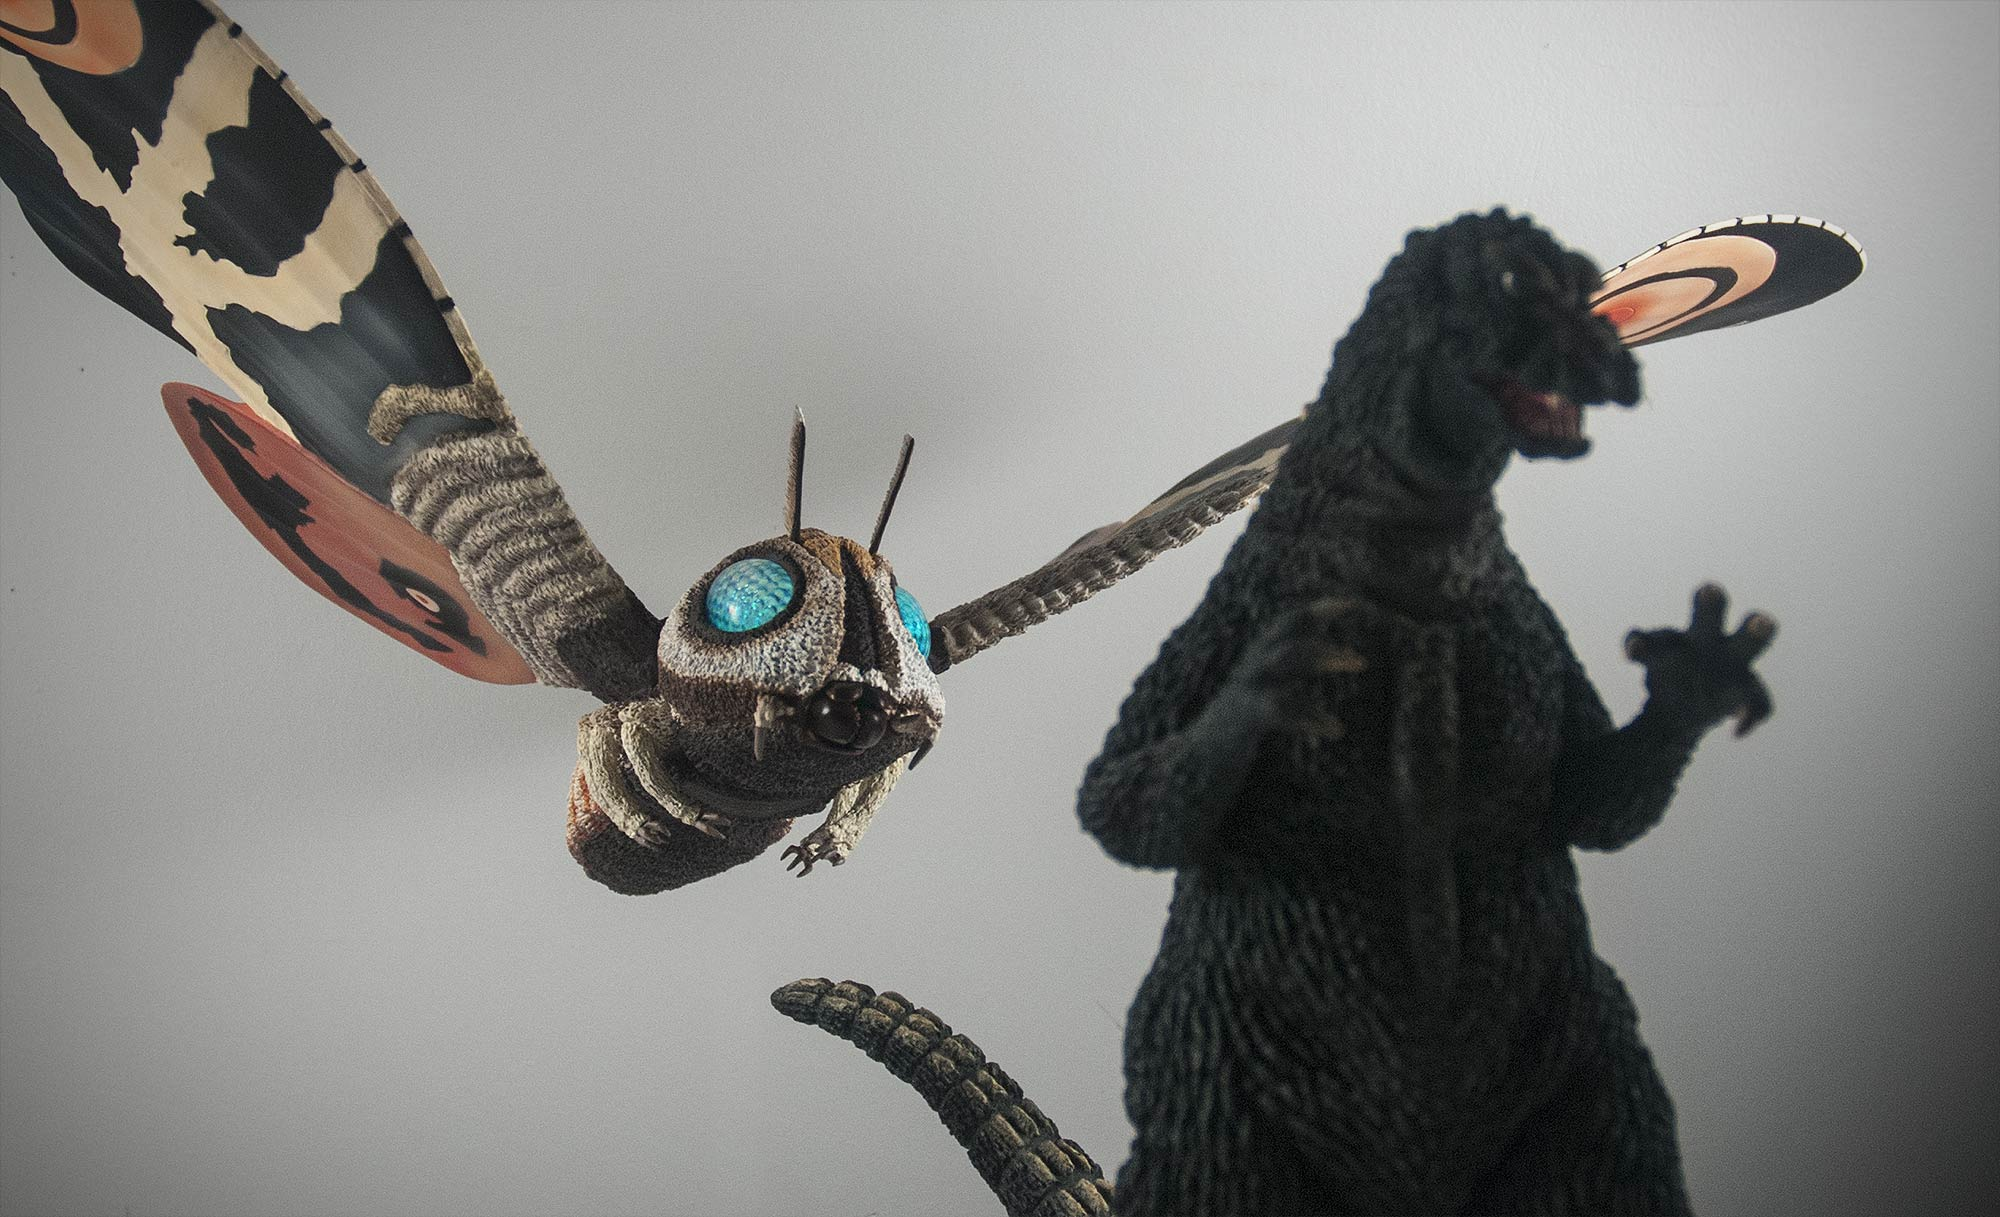 X-Plus Godzilla and Mothra vinyl figures.